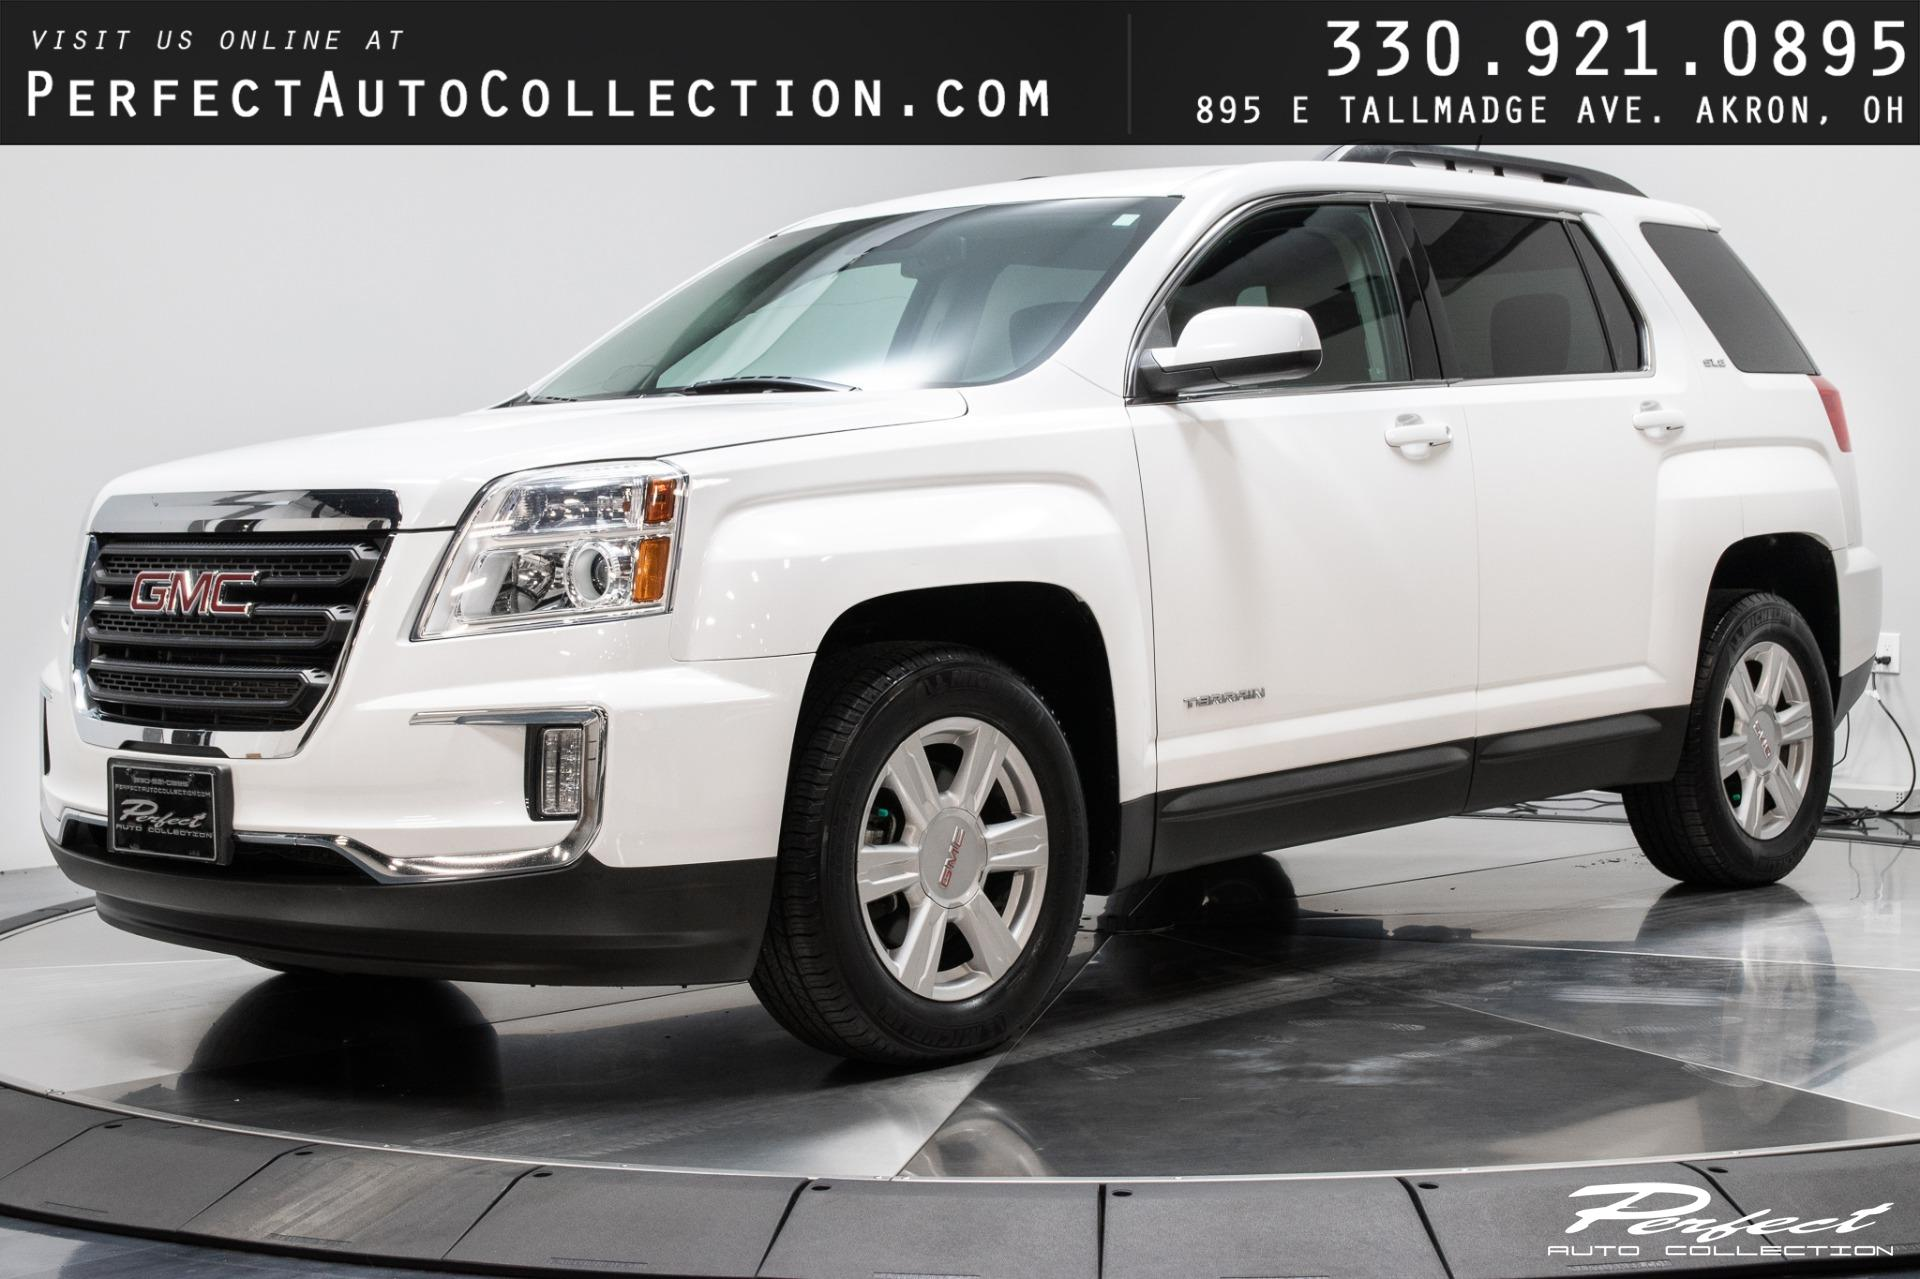 Used 2016 GMC Terrain SLE-2 for sale $15,993 at Perfect Auto Collection in Akron OH 44310 1